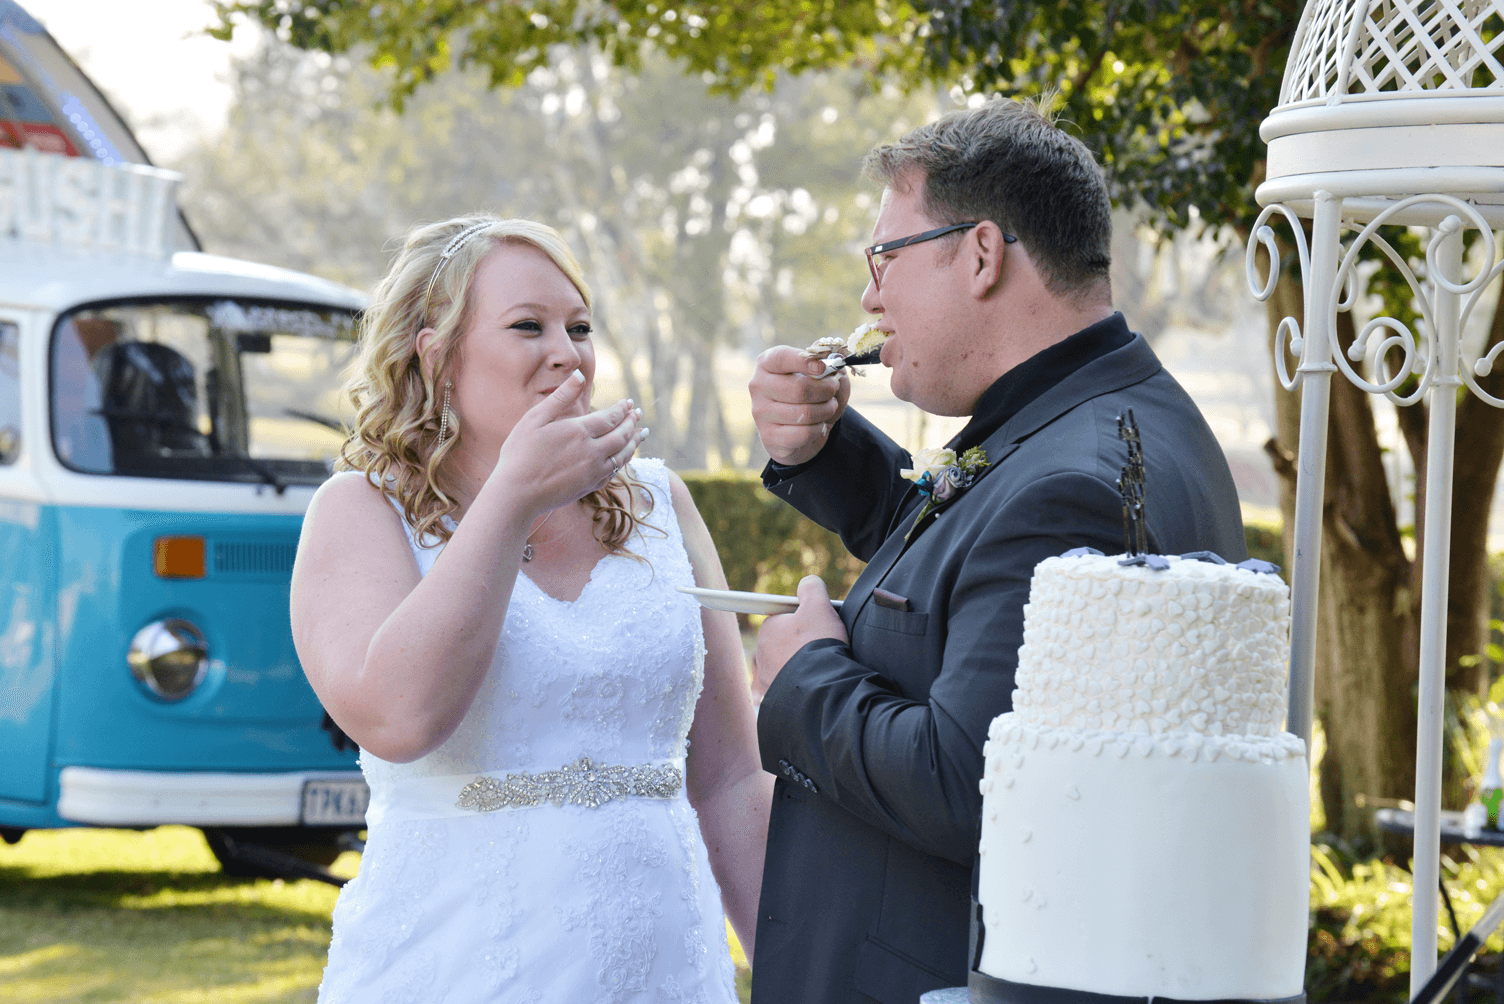 tasting of wedding cake